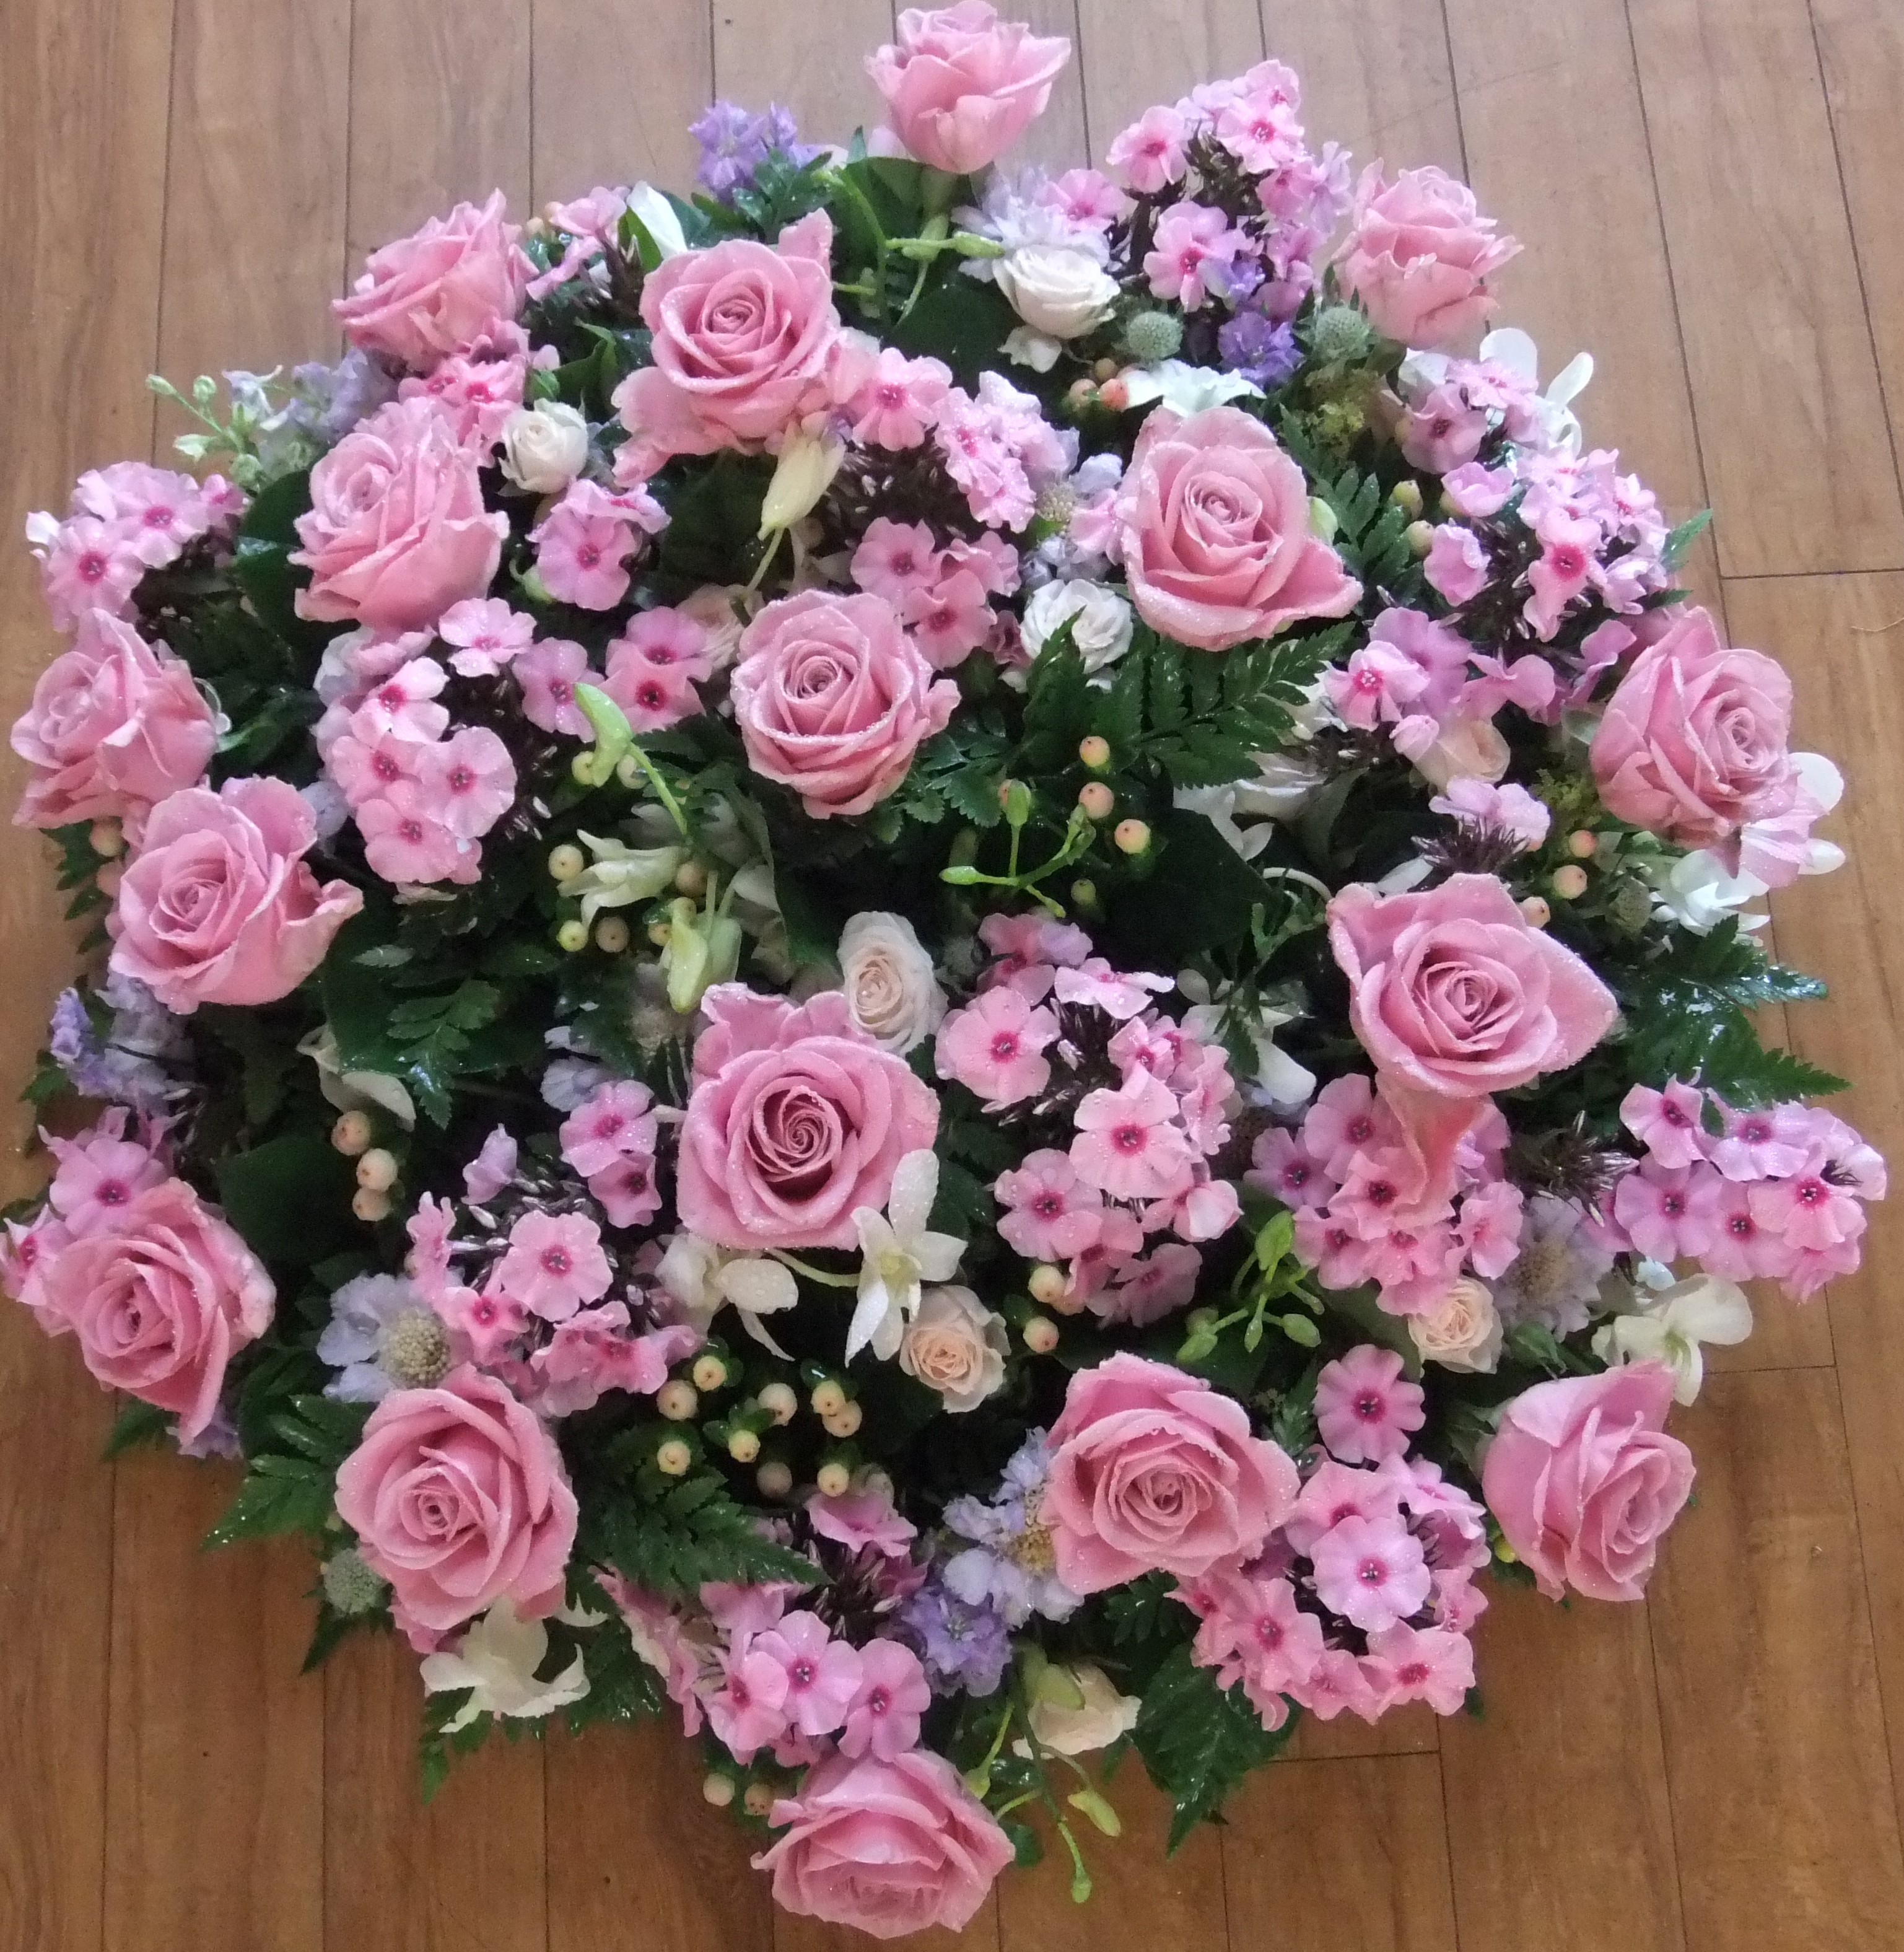 Flowers for funerals john thomas florist flowers for funerals izmirmasajfo Choice Image